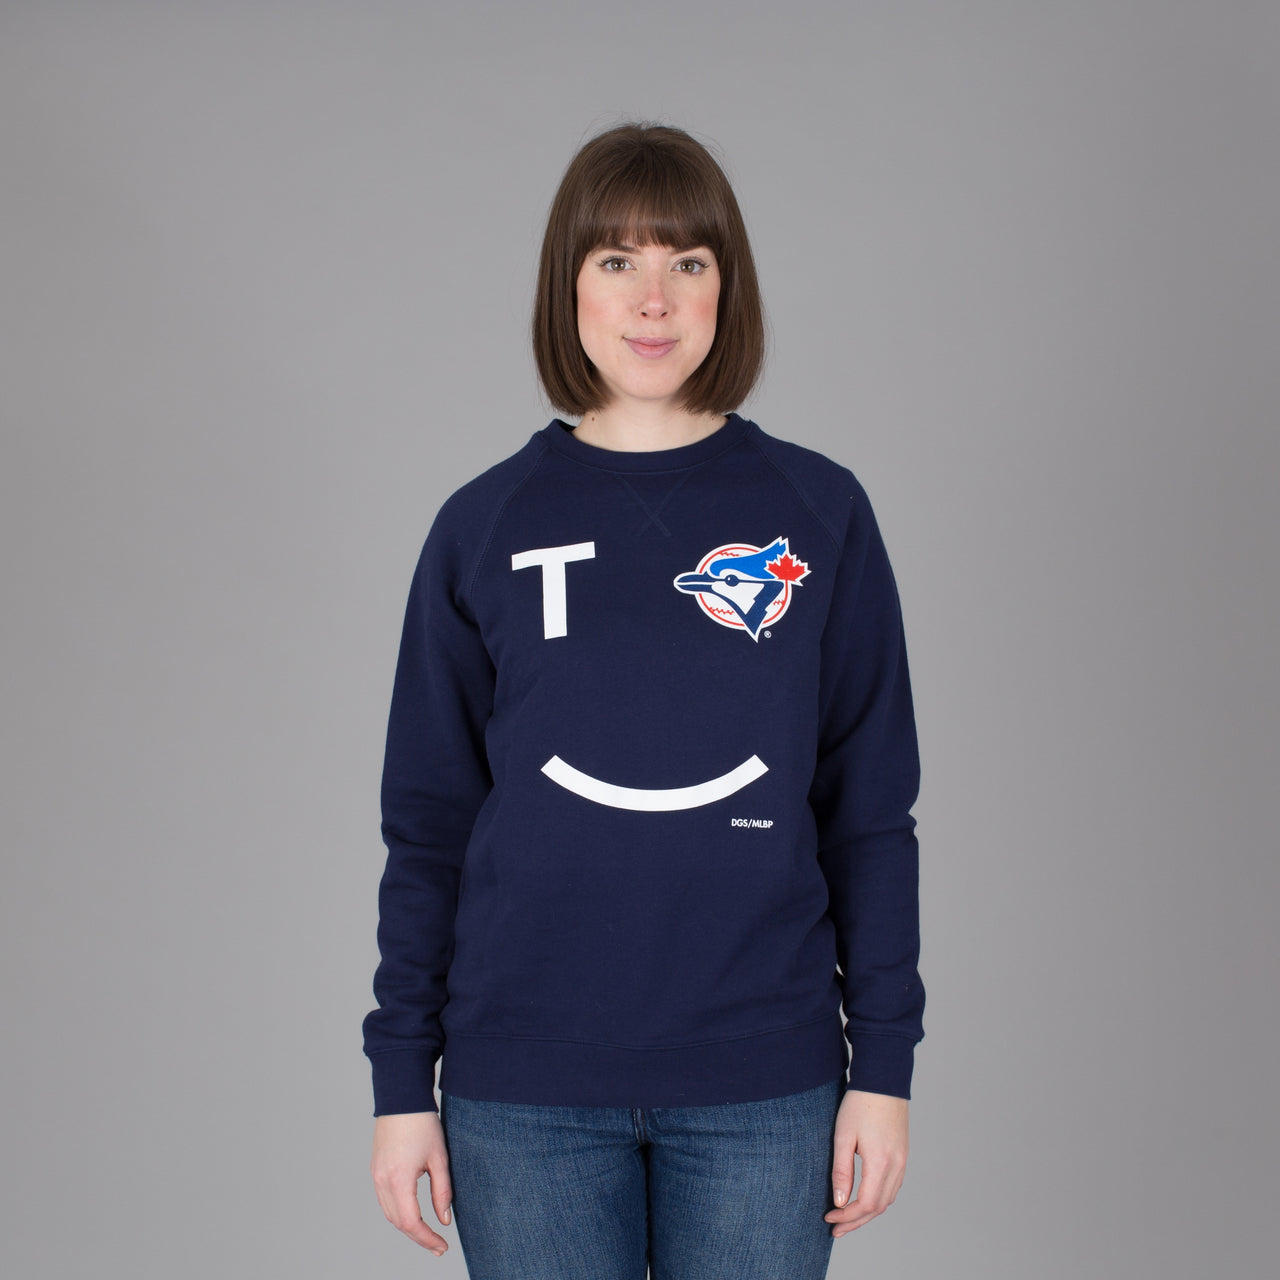 TO Smiley Jays Sweatshirt